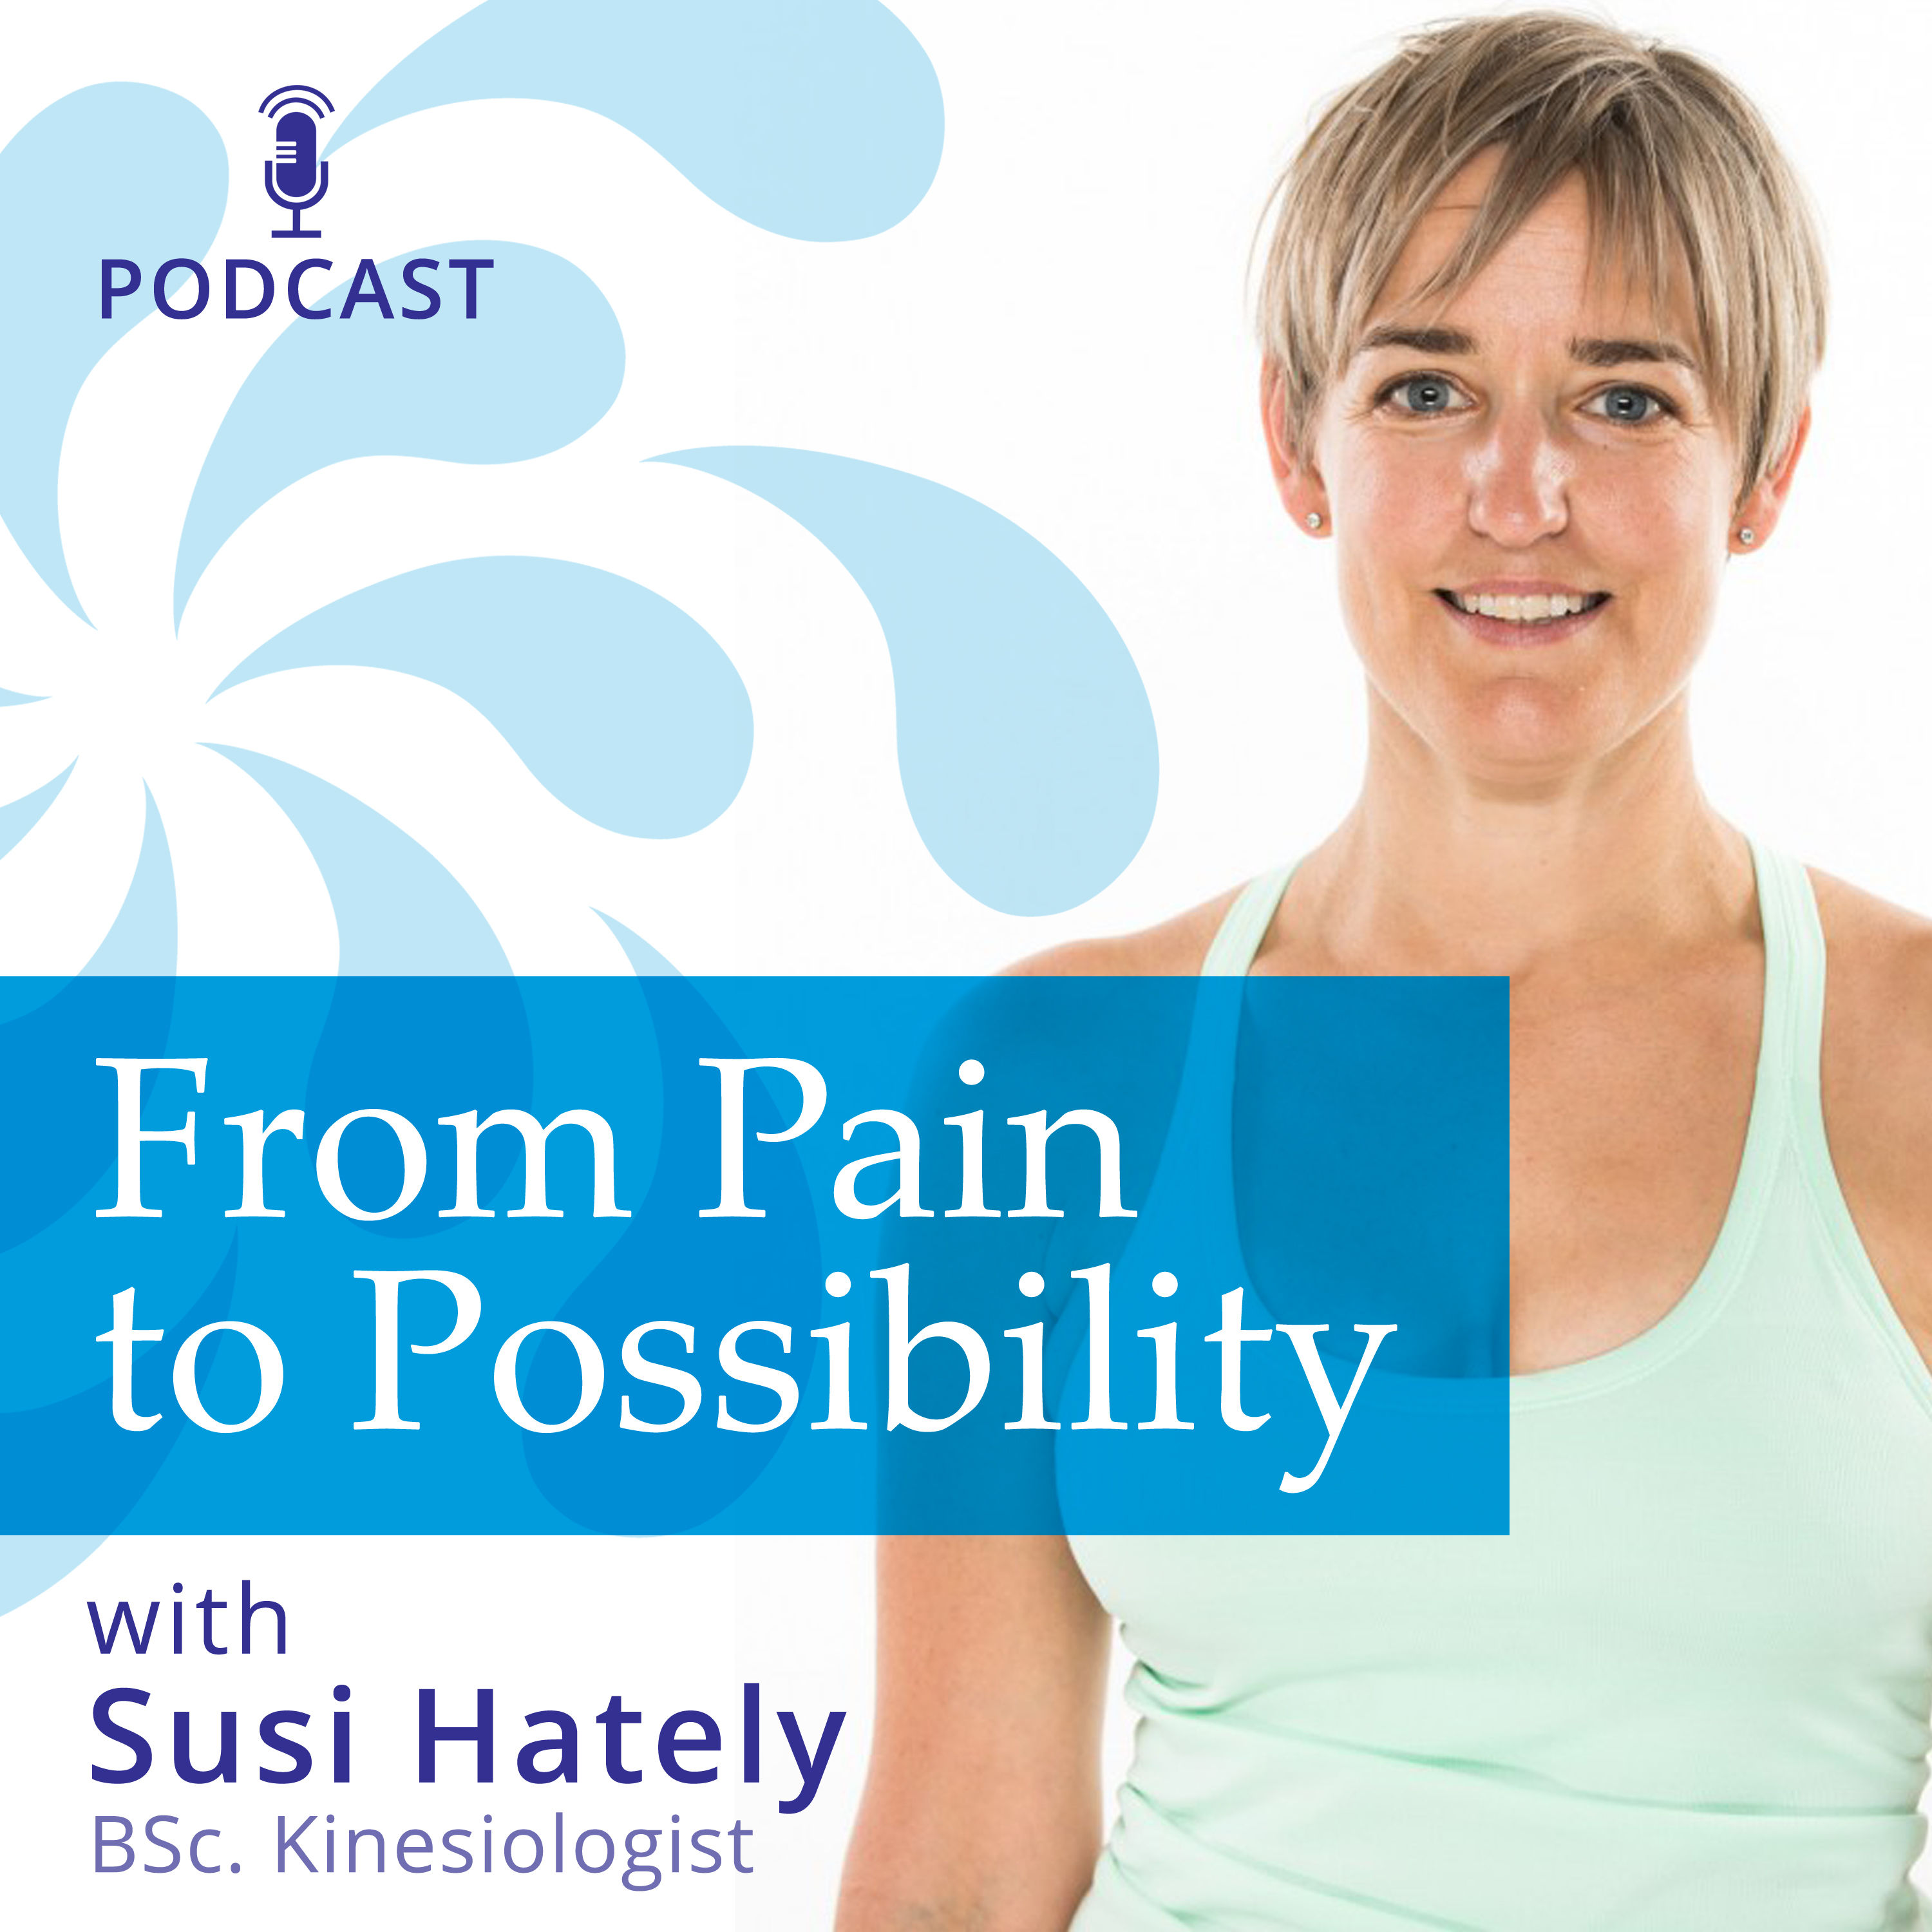 From Pain to Possibility show art